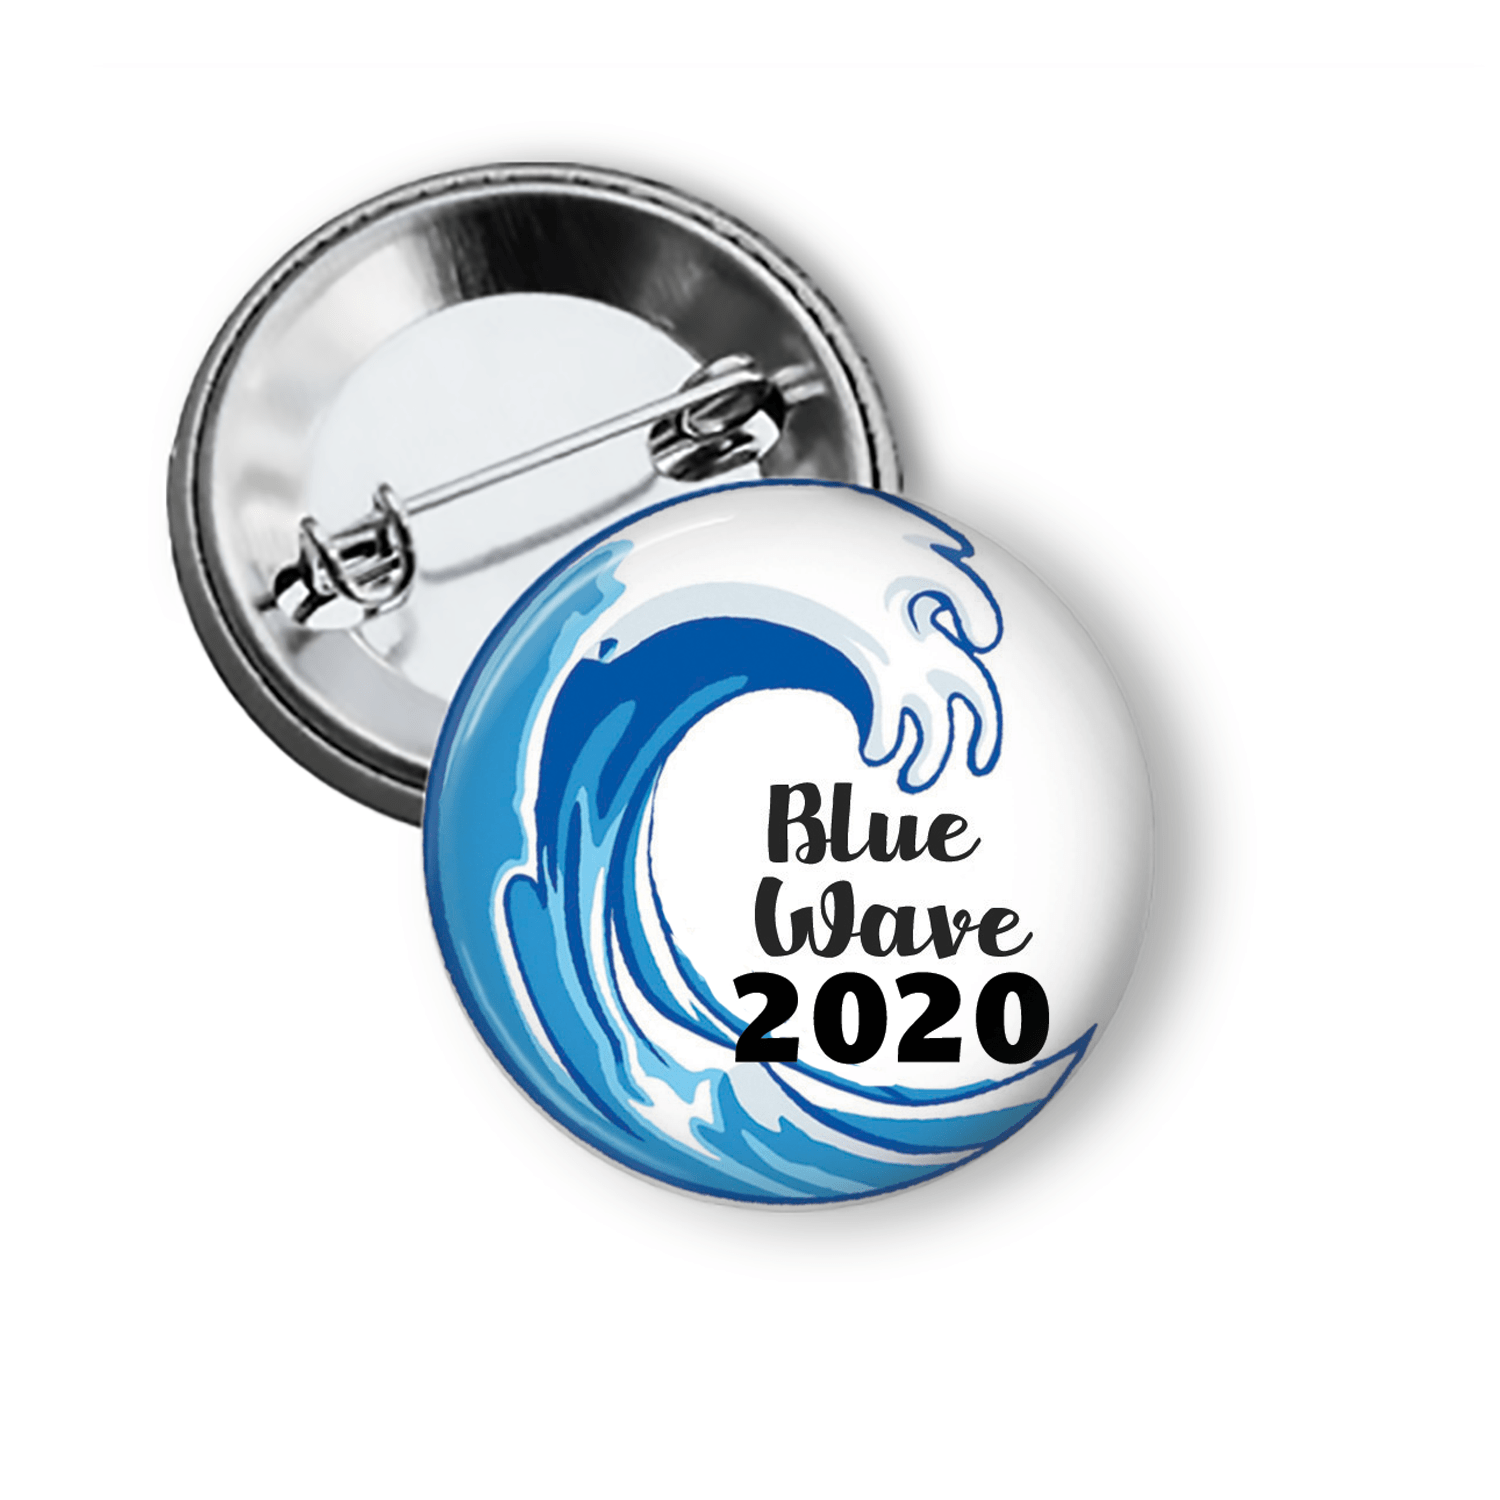 Blue Wave Democratic Pinback Button 2020 Pins Buttons For the People